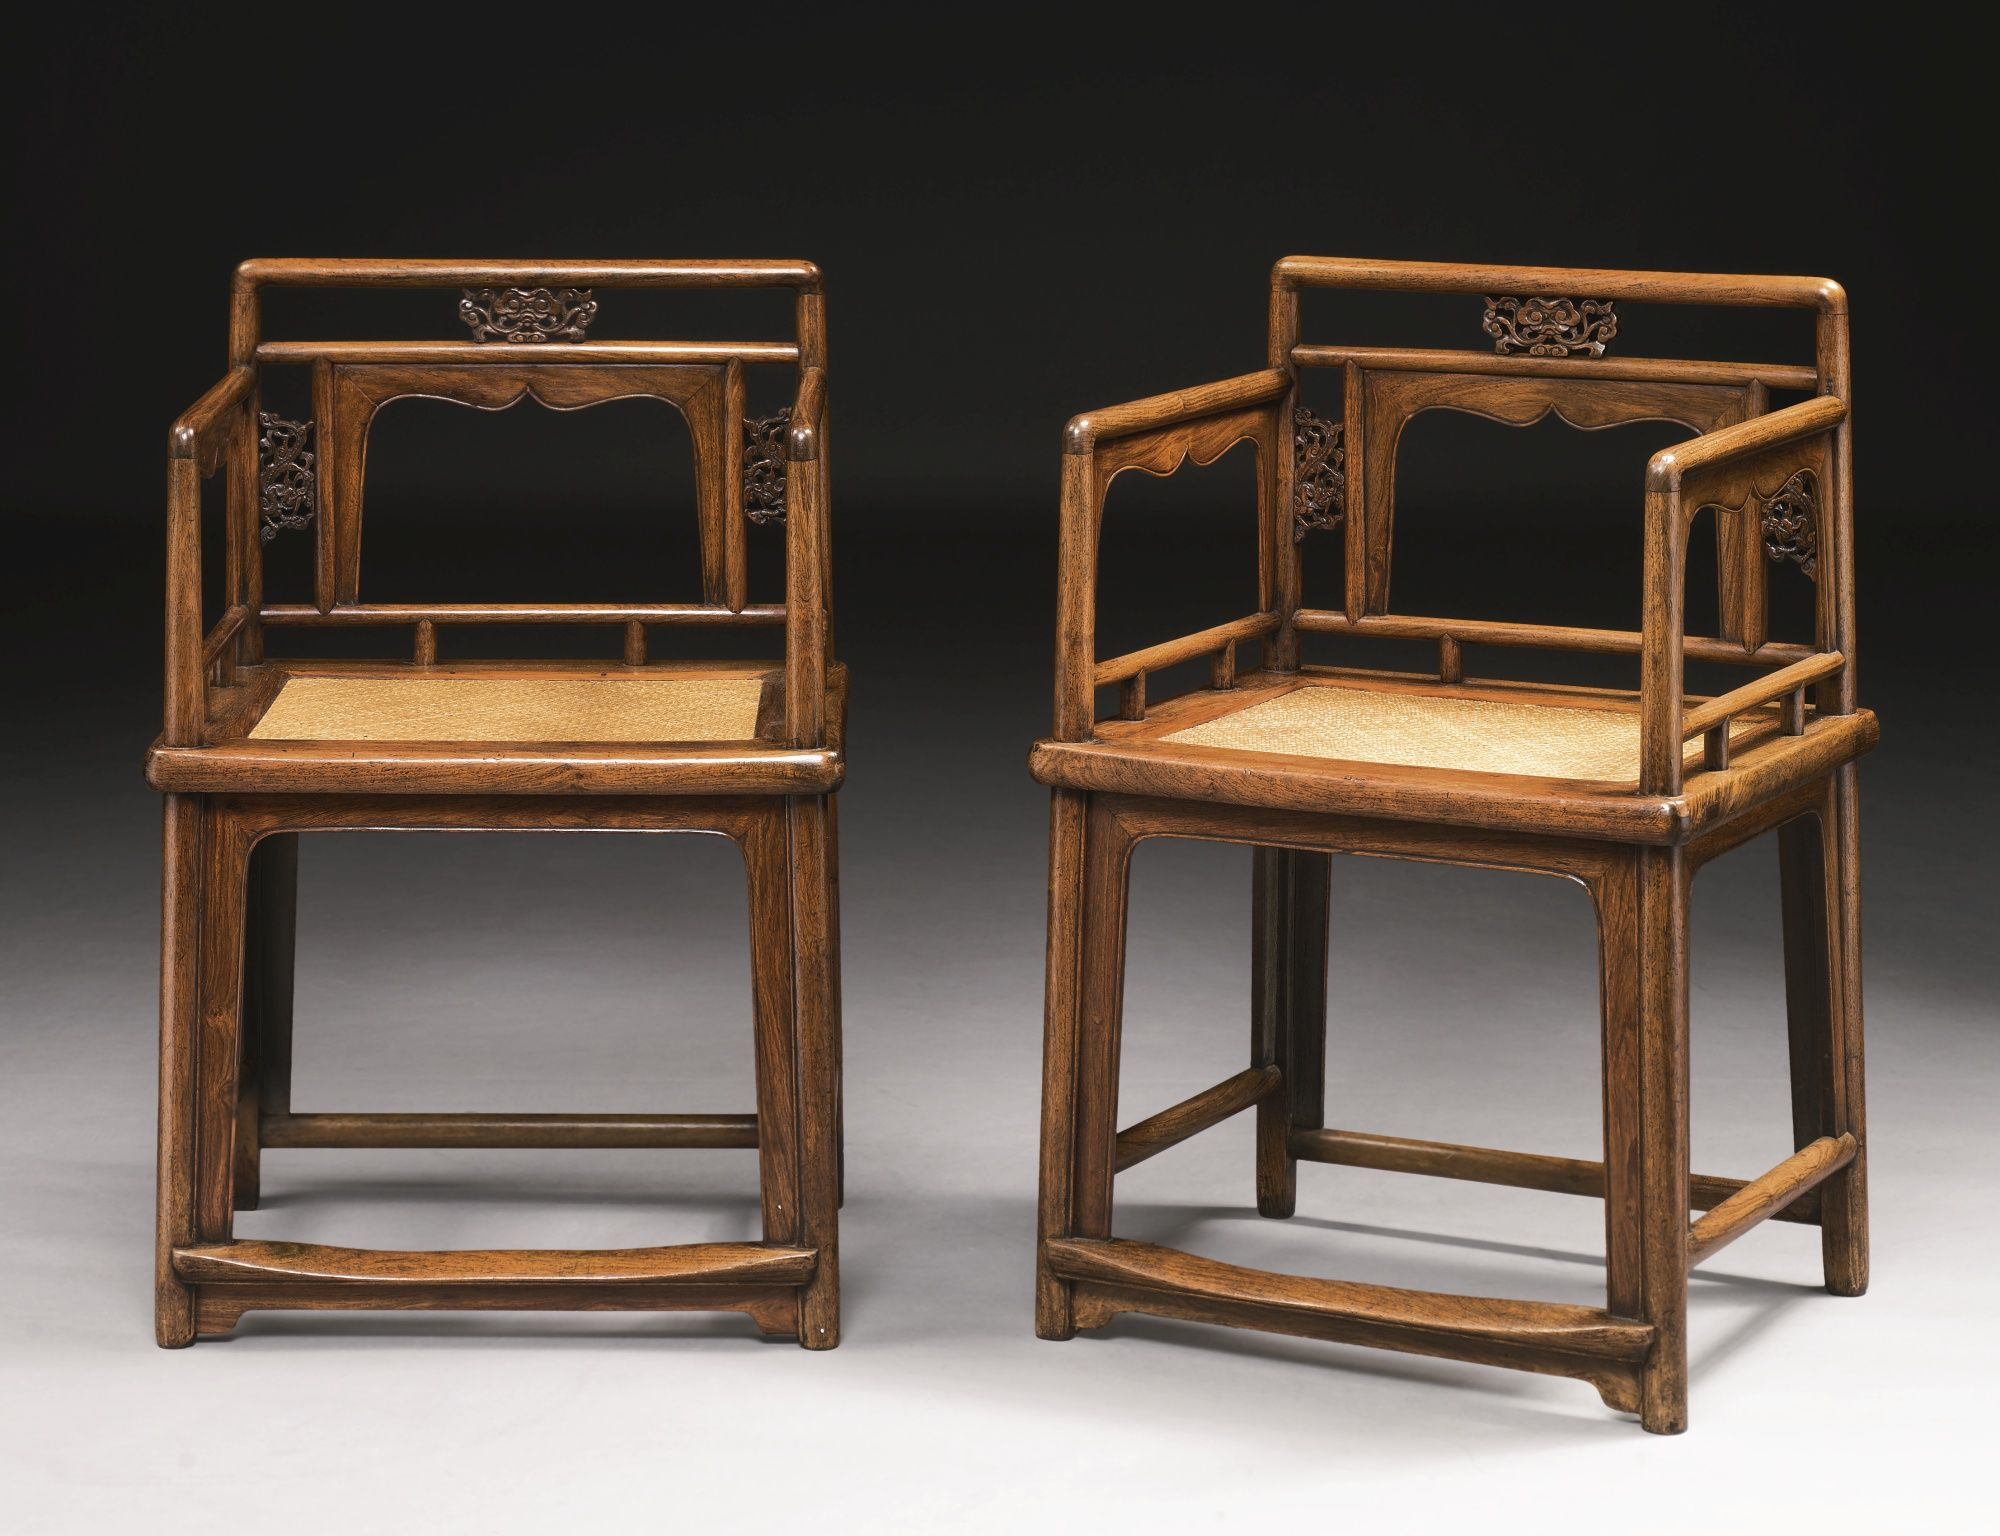 A Pair Of Huanghuali Low Back Armchairs Meiguiyi Br 17th Century Lot Sotheby S Antique Chinese Furniture Chinese Furniture Asian Furniture